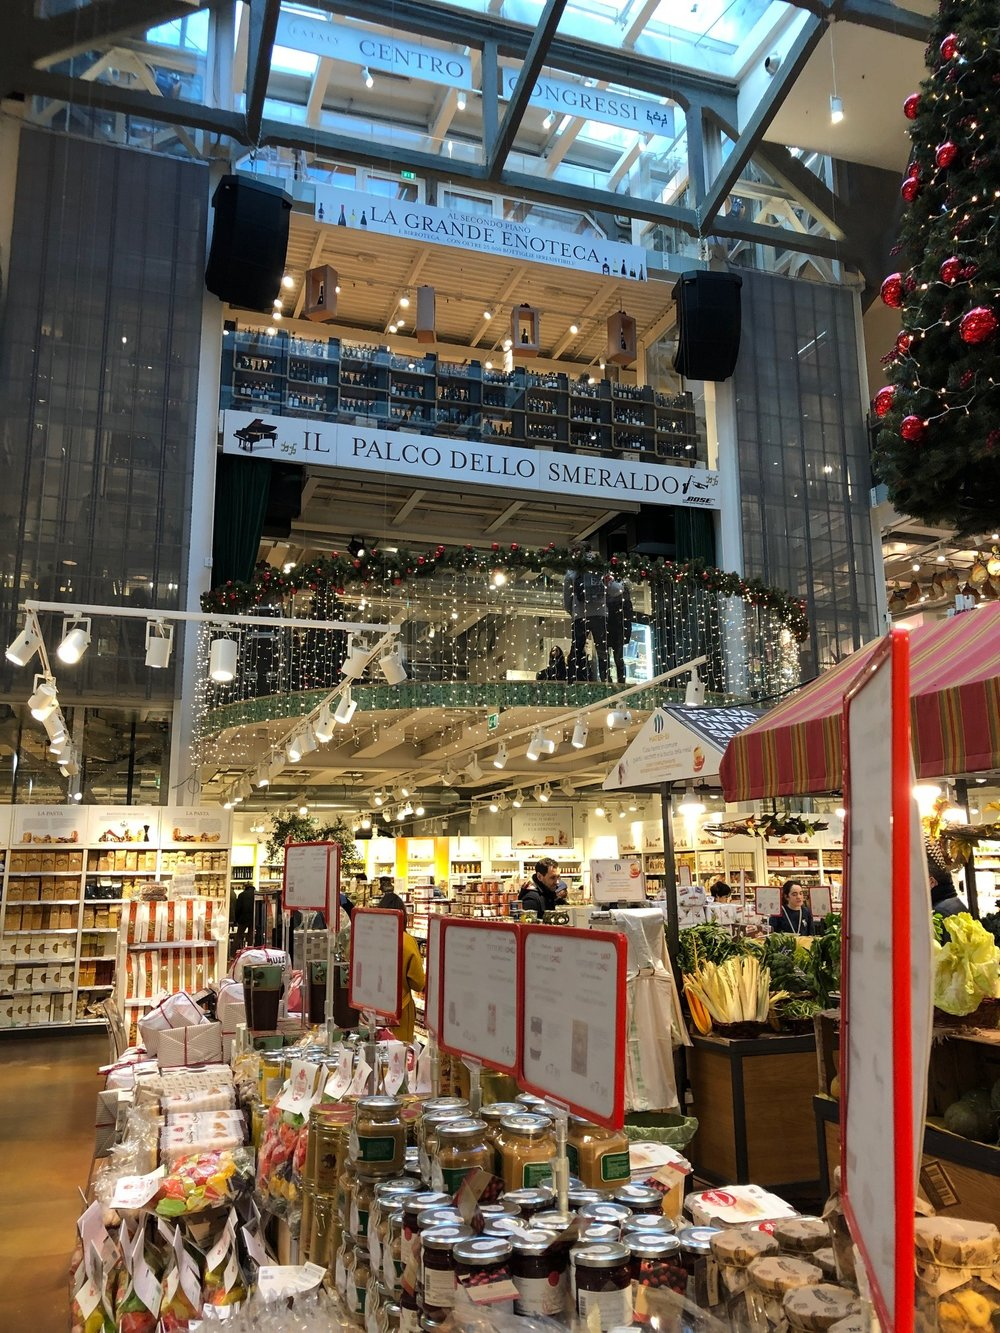 I can't help but love Eataly all over the world.